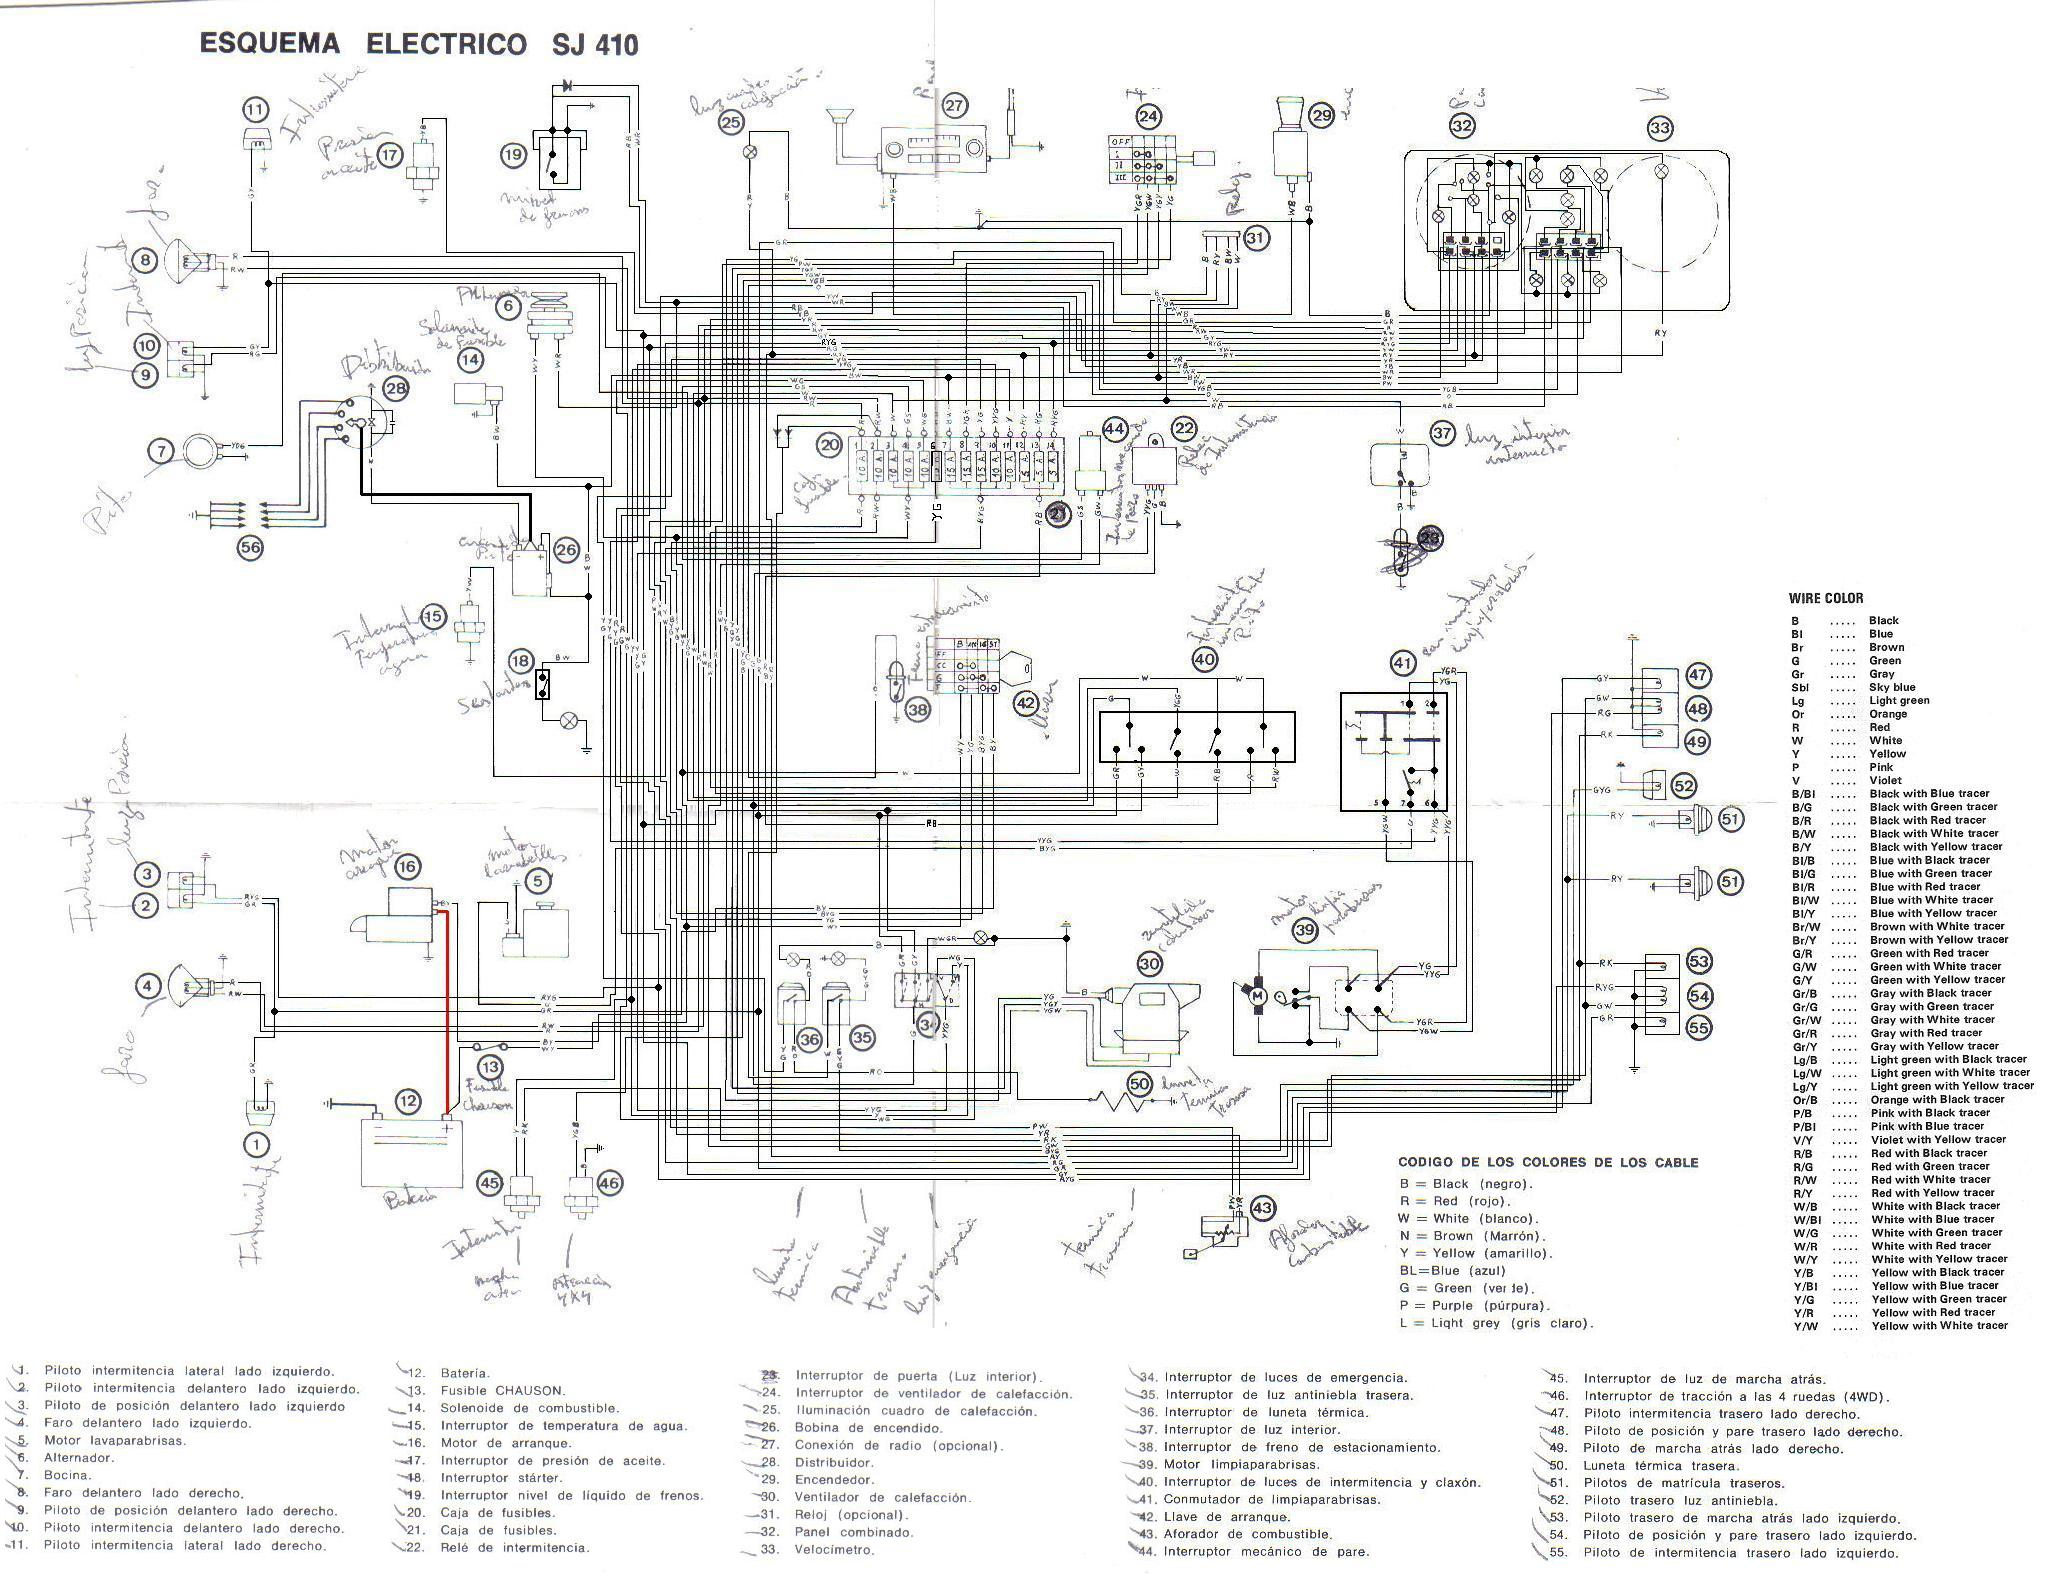 Wiring diagrams - Suzuki Club UK on lighting diagrams, troubleshooting diagrams, motor diagrams, snatch block diagrams, transformer diagrams, electrical diagrams, honda motorcycle repair diagrams, internet of things diagrams, gmc fuse box diagrams, smart car diagrams, hvac diagrams, electronic circuit diagrams, engine diagrams, friendship bracelet diagrams, battery diagrams, pinout diagrams, led circuit diagrams, series and parallel circuits diagrams, sincgars radio configurations diagrams, switch diagrams,